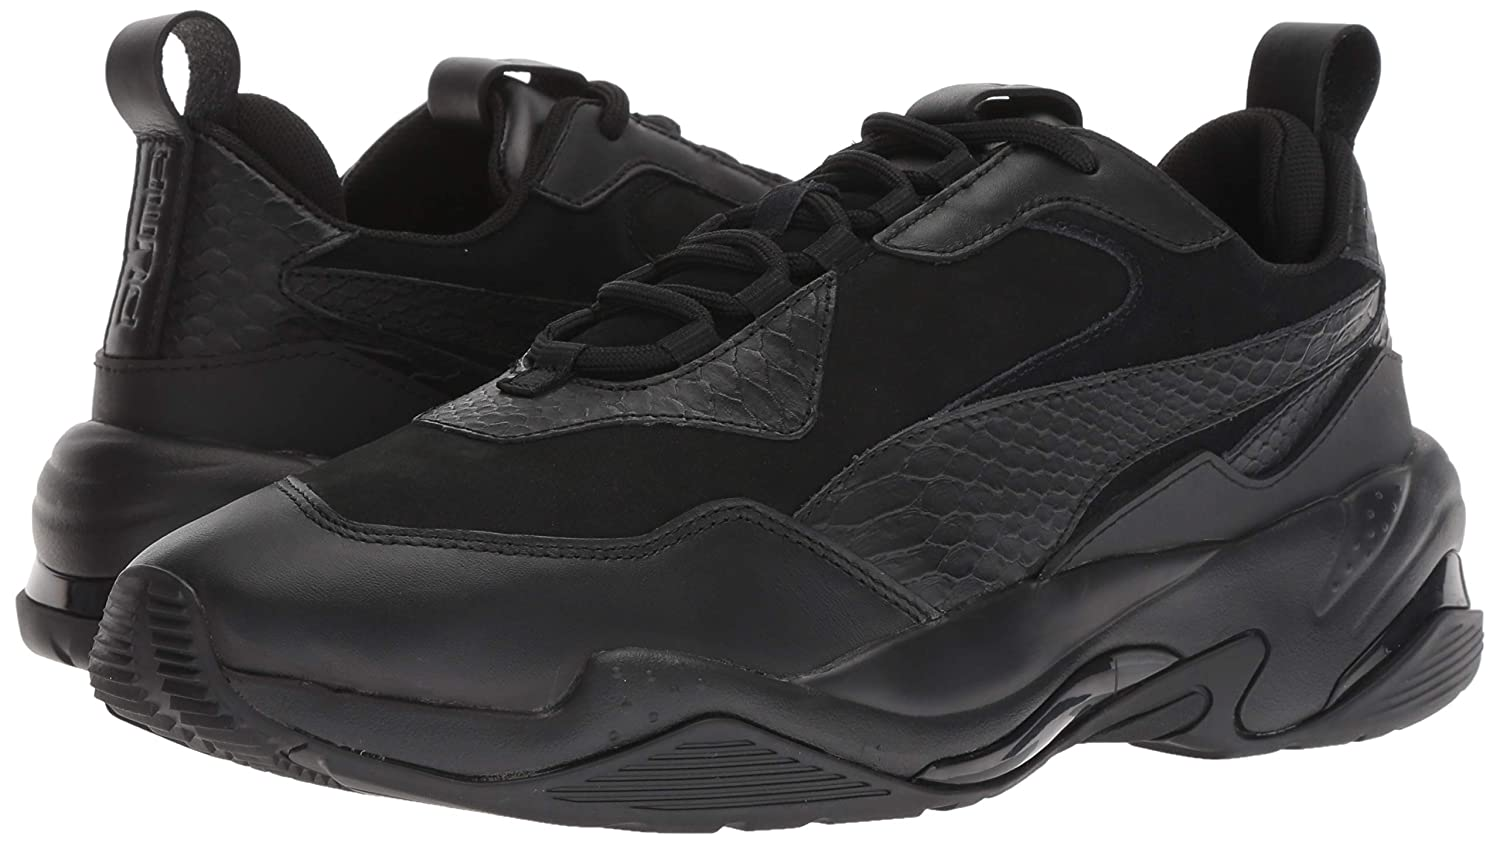 Details about Puma Thunder Desert Trainers Men Sneaker Mens Shoes Running Shoes